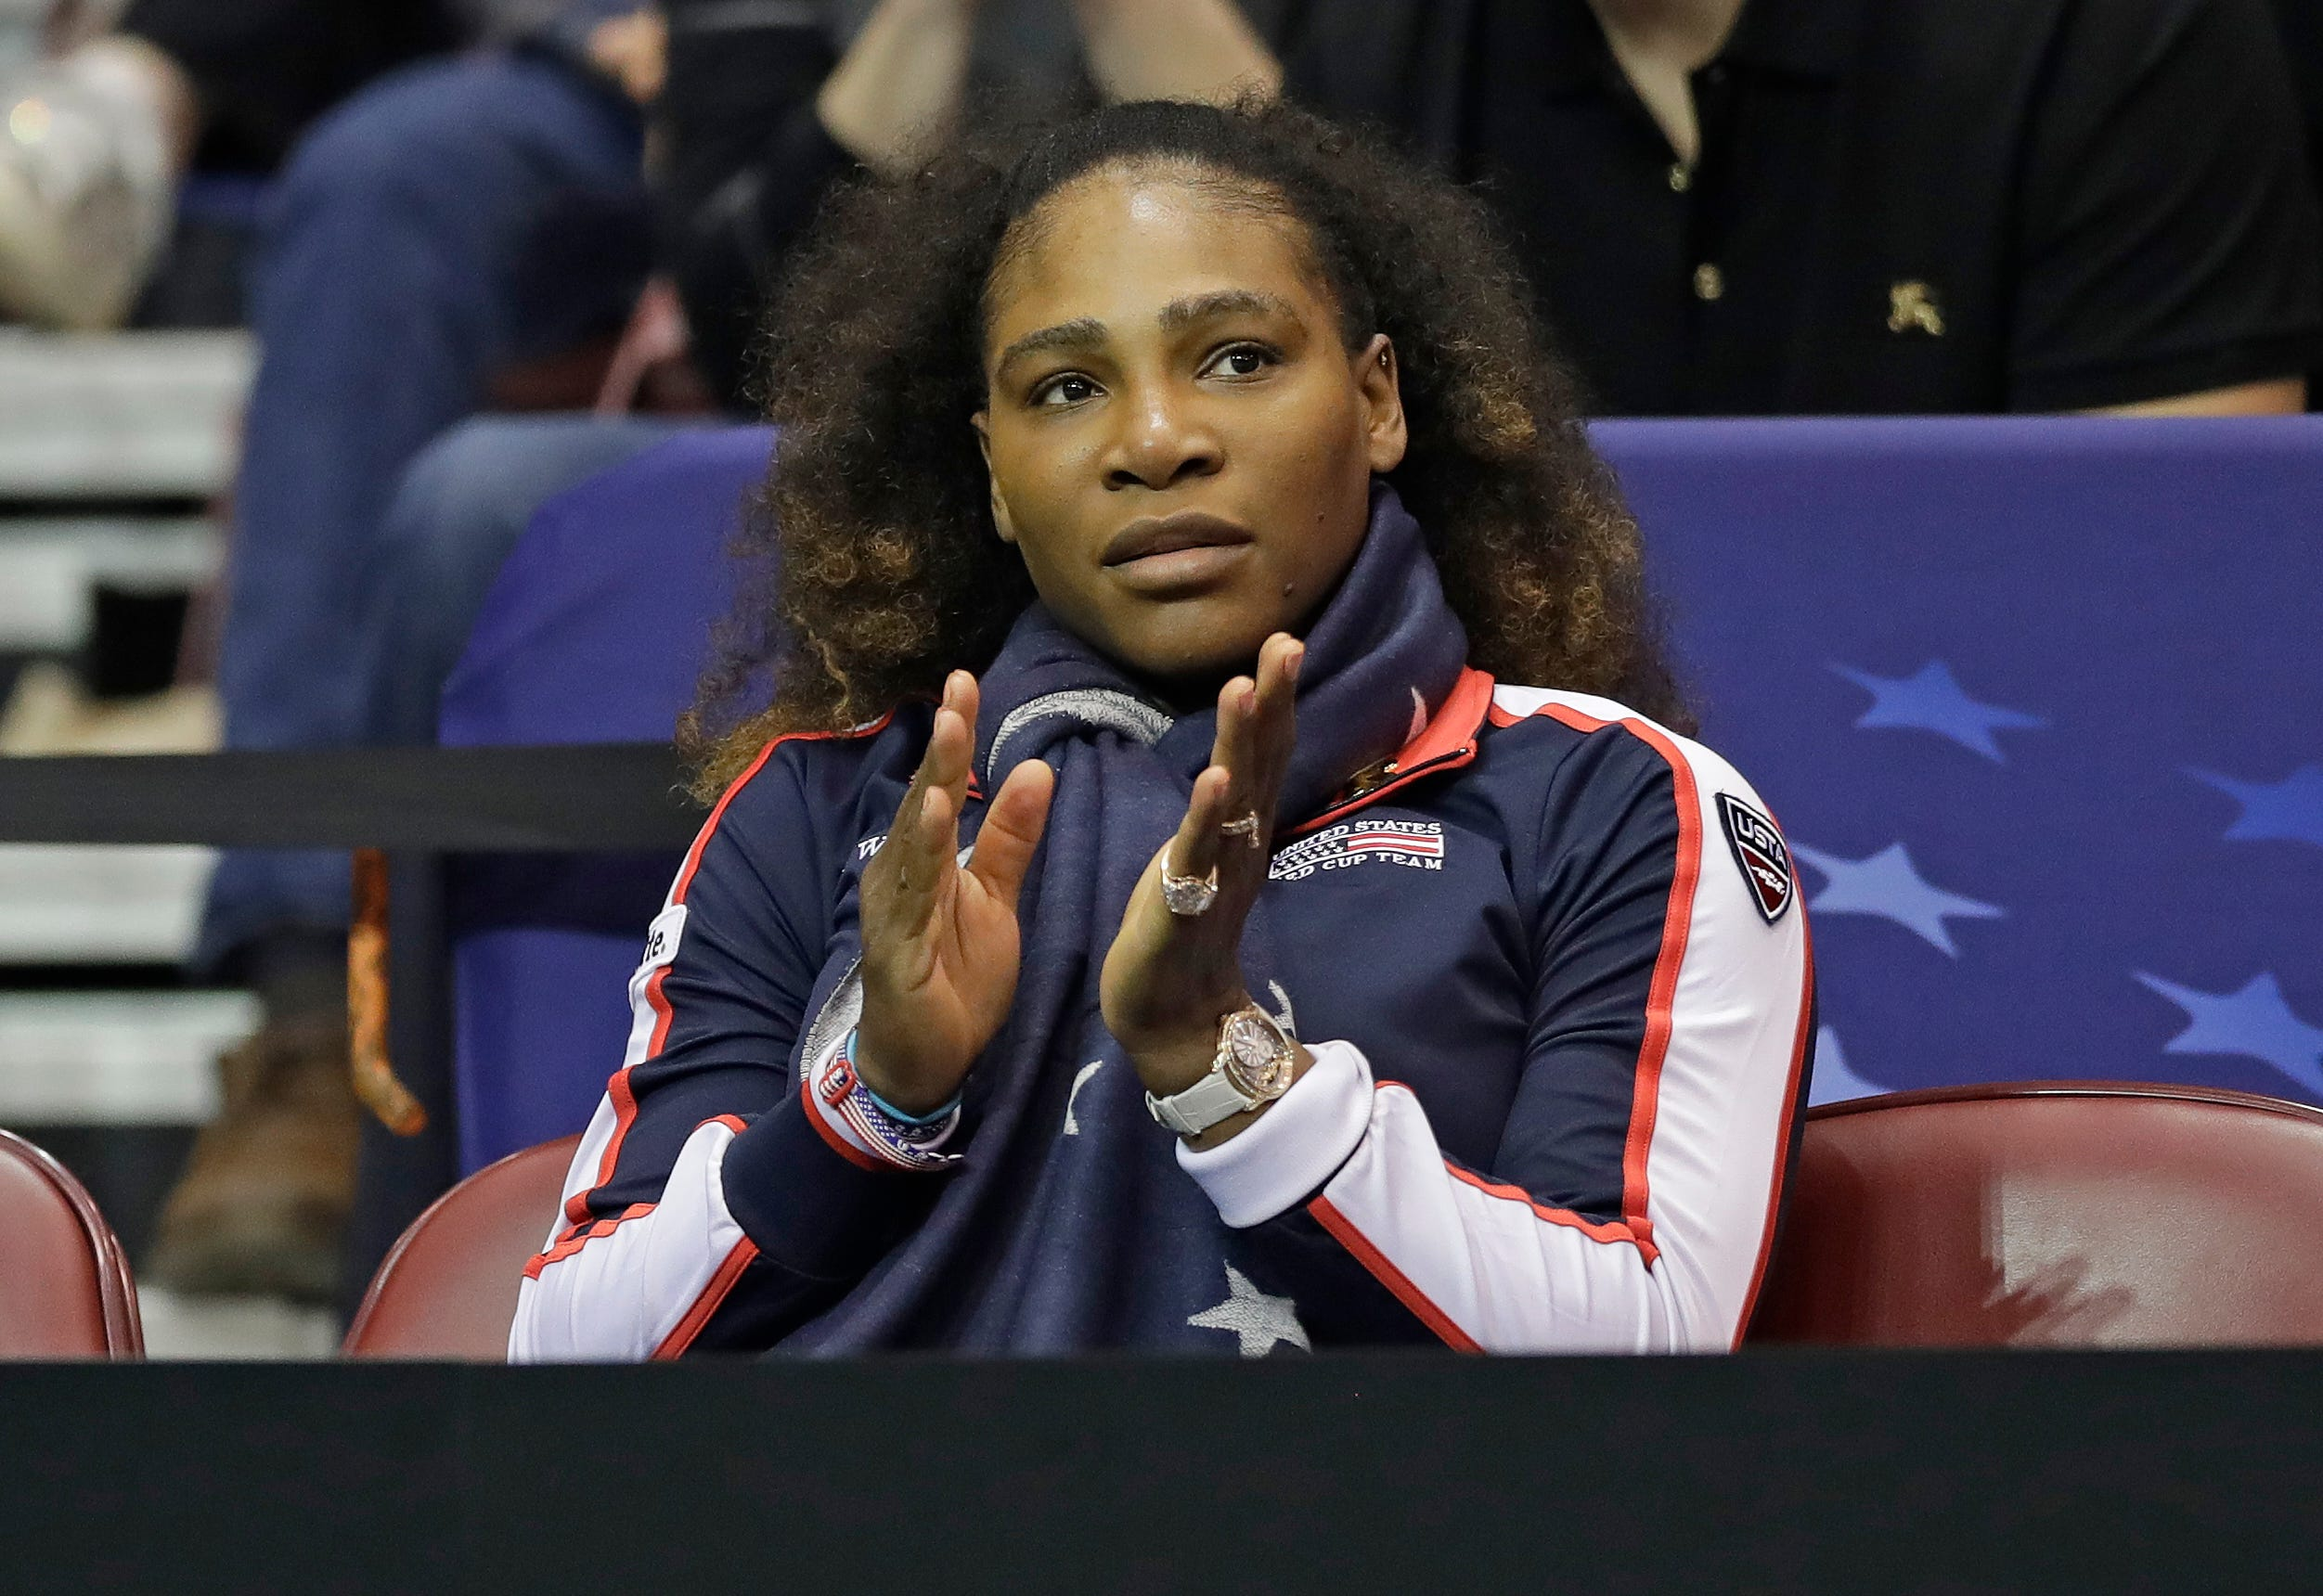 Serena Williams stars in Oscars ad: 'There's no wrong way to be a woman'